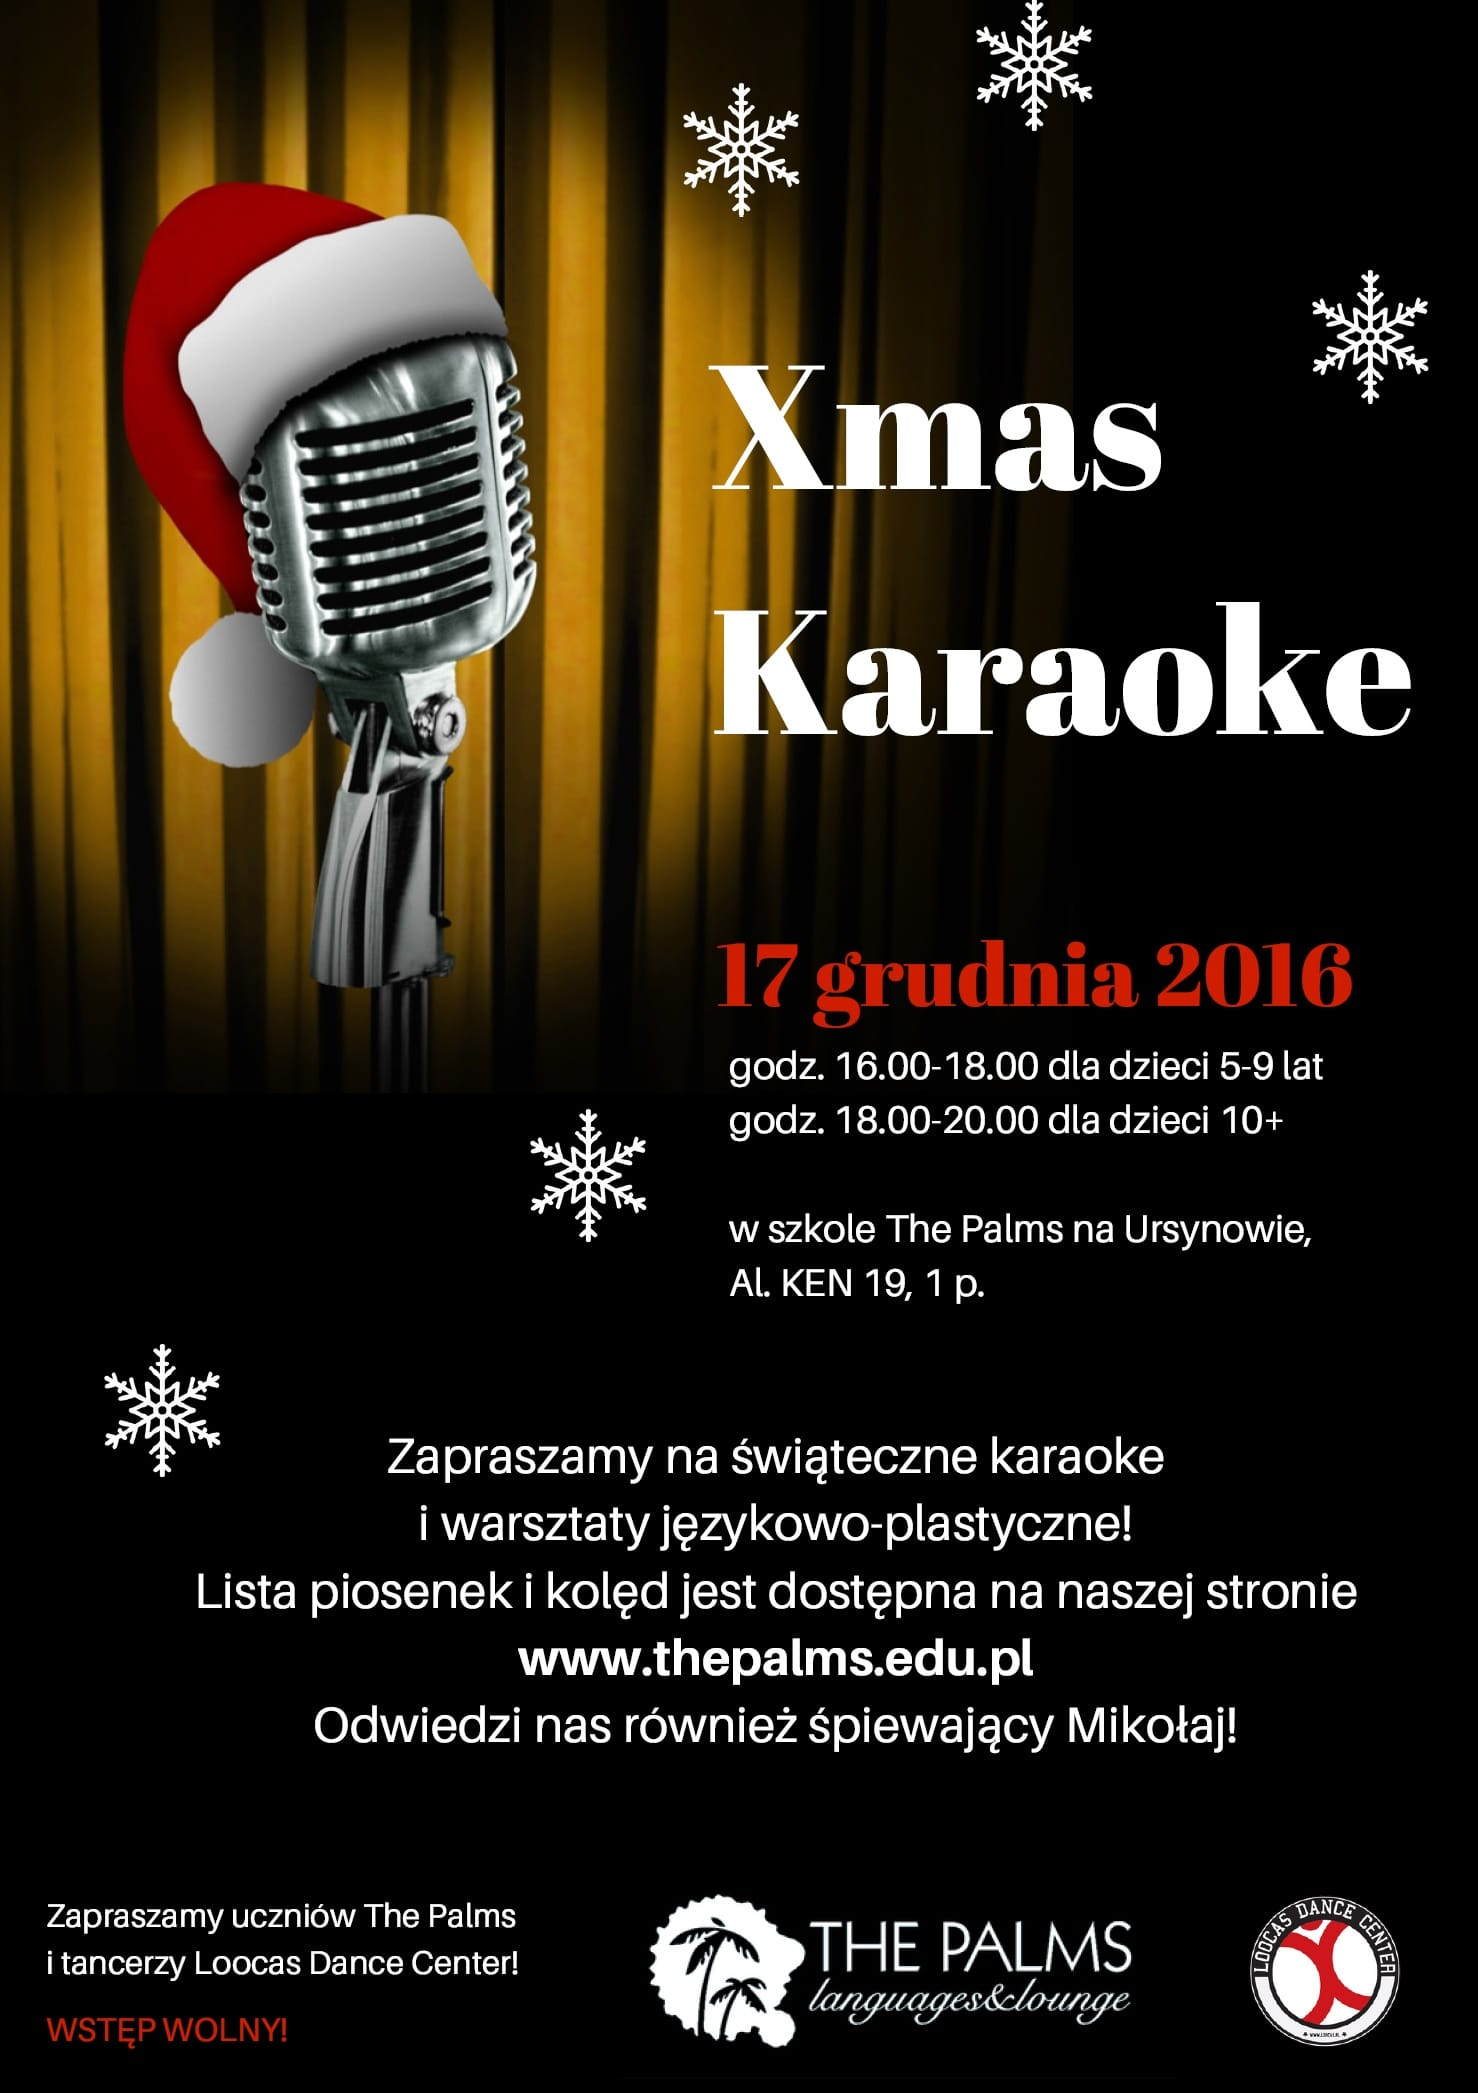 xmas-karaoke-w-szkole-the-palms-2